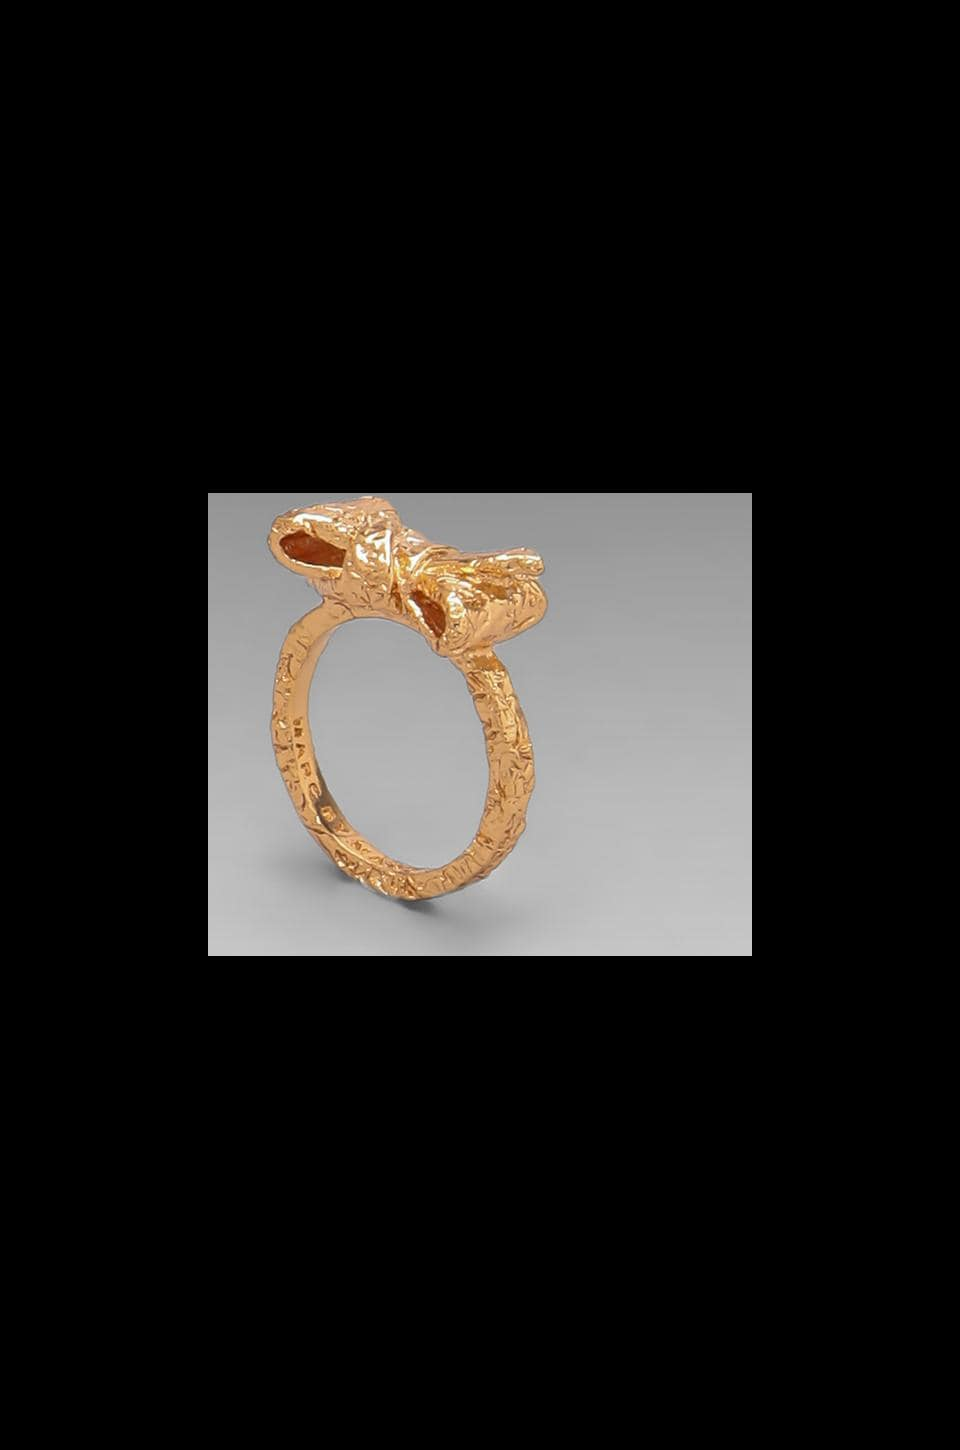 Marc by Marc Jacobs Tiny Bow Ring in Rose Gold